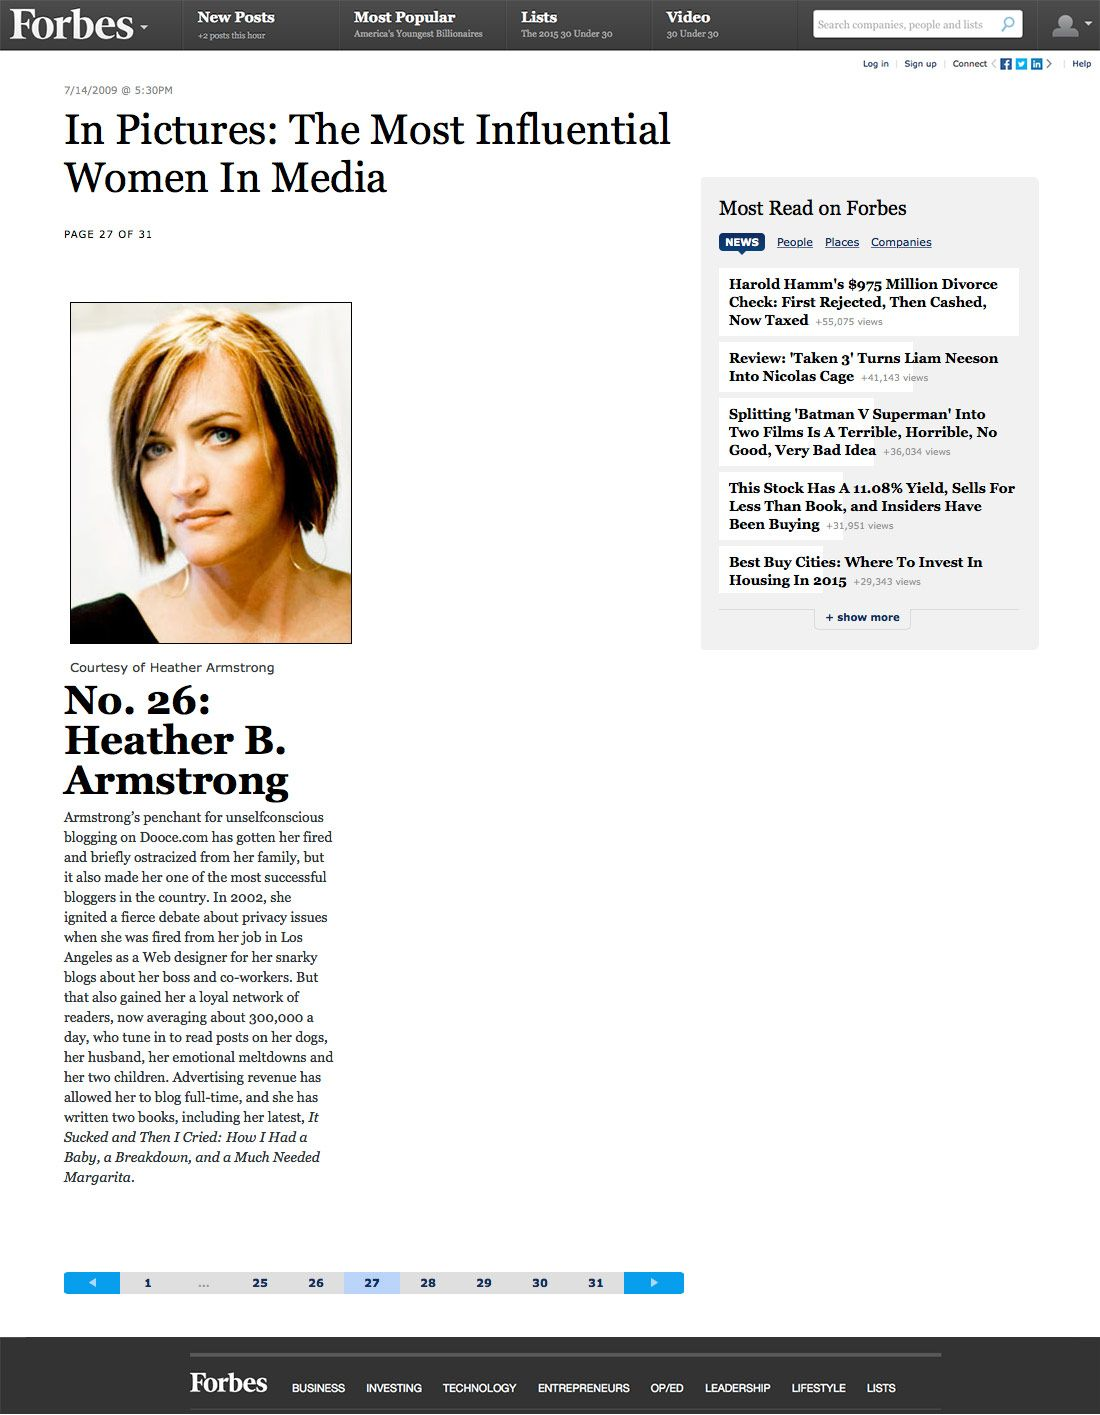 In Pictures: The Most Influential Women In Media